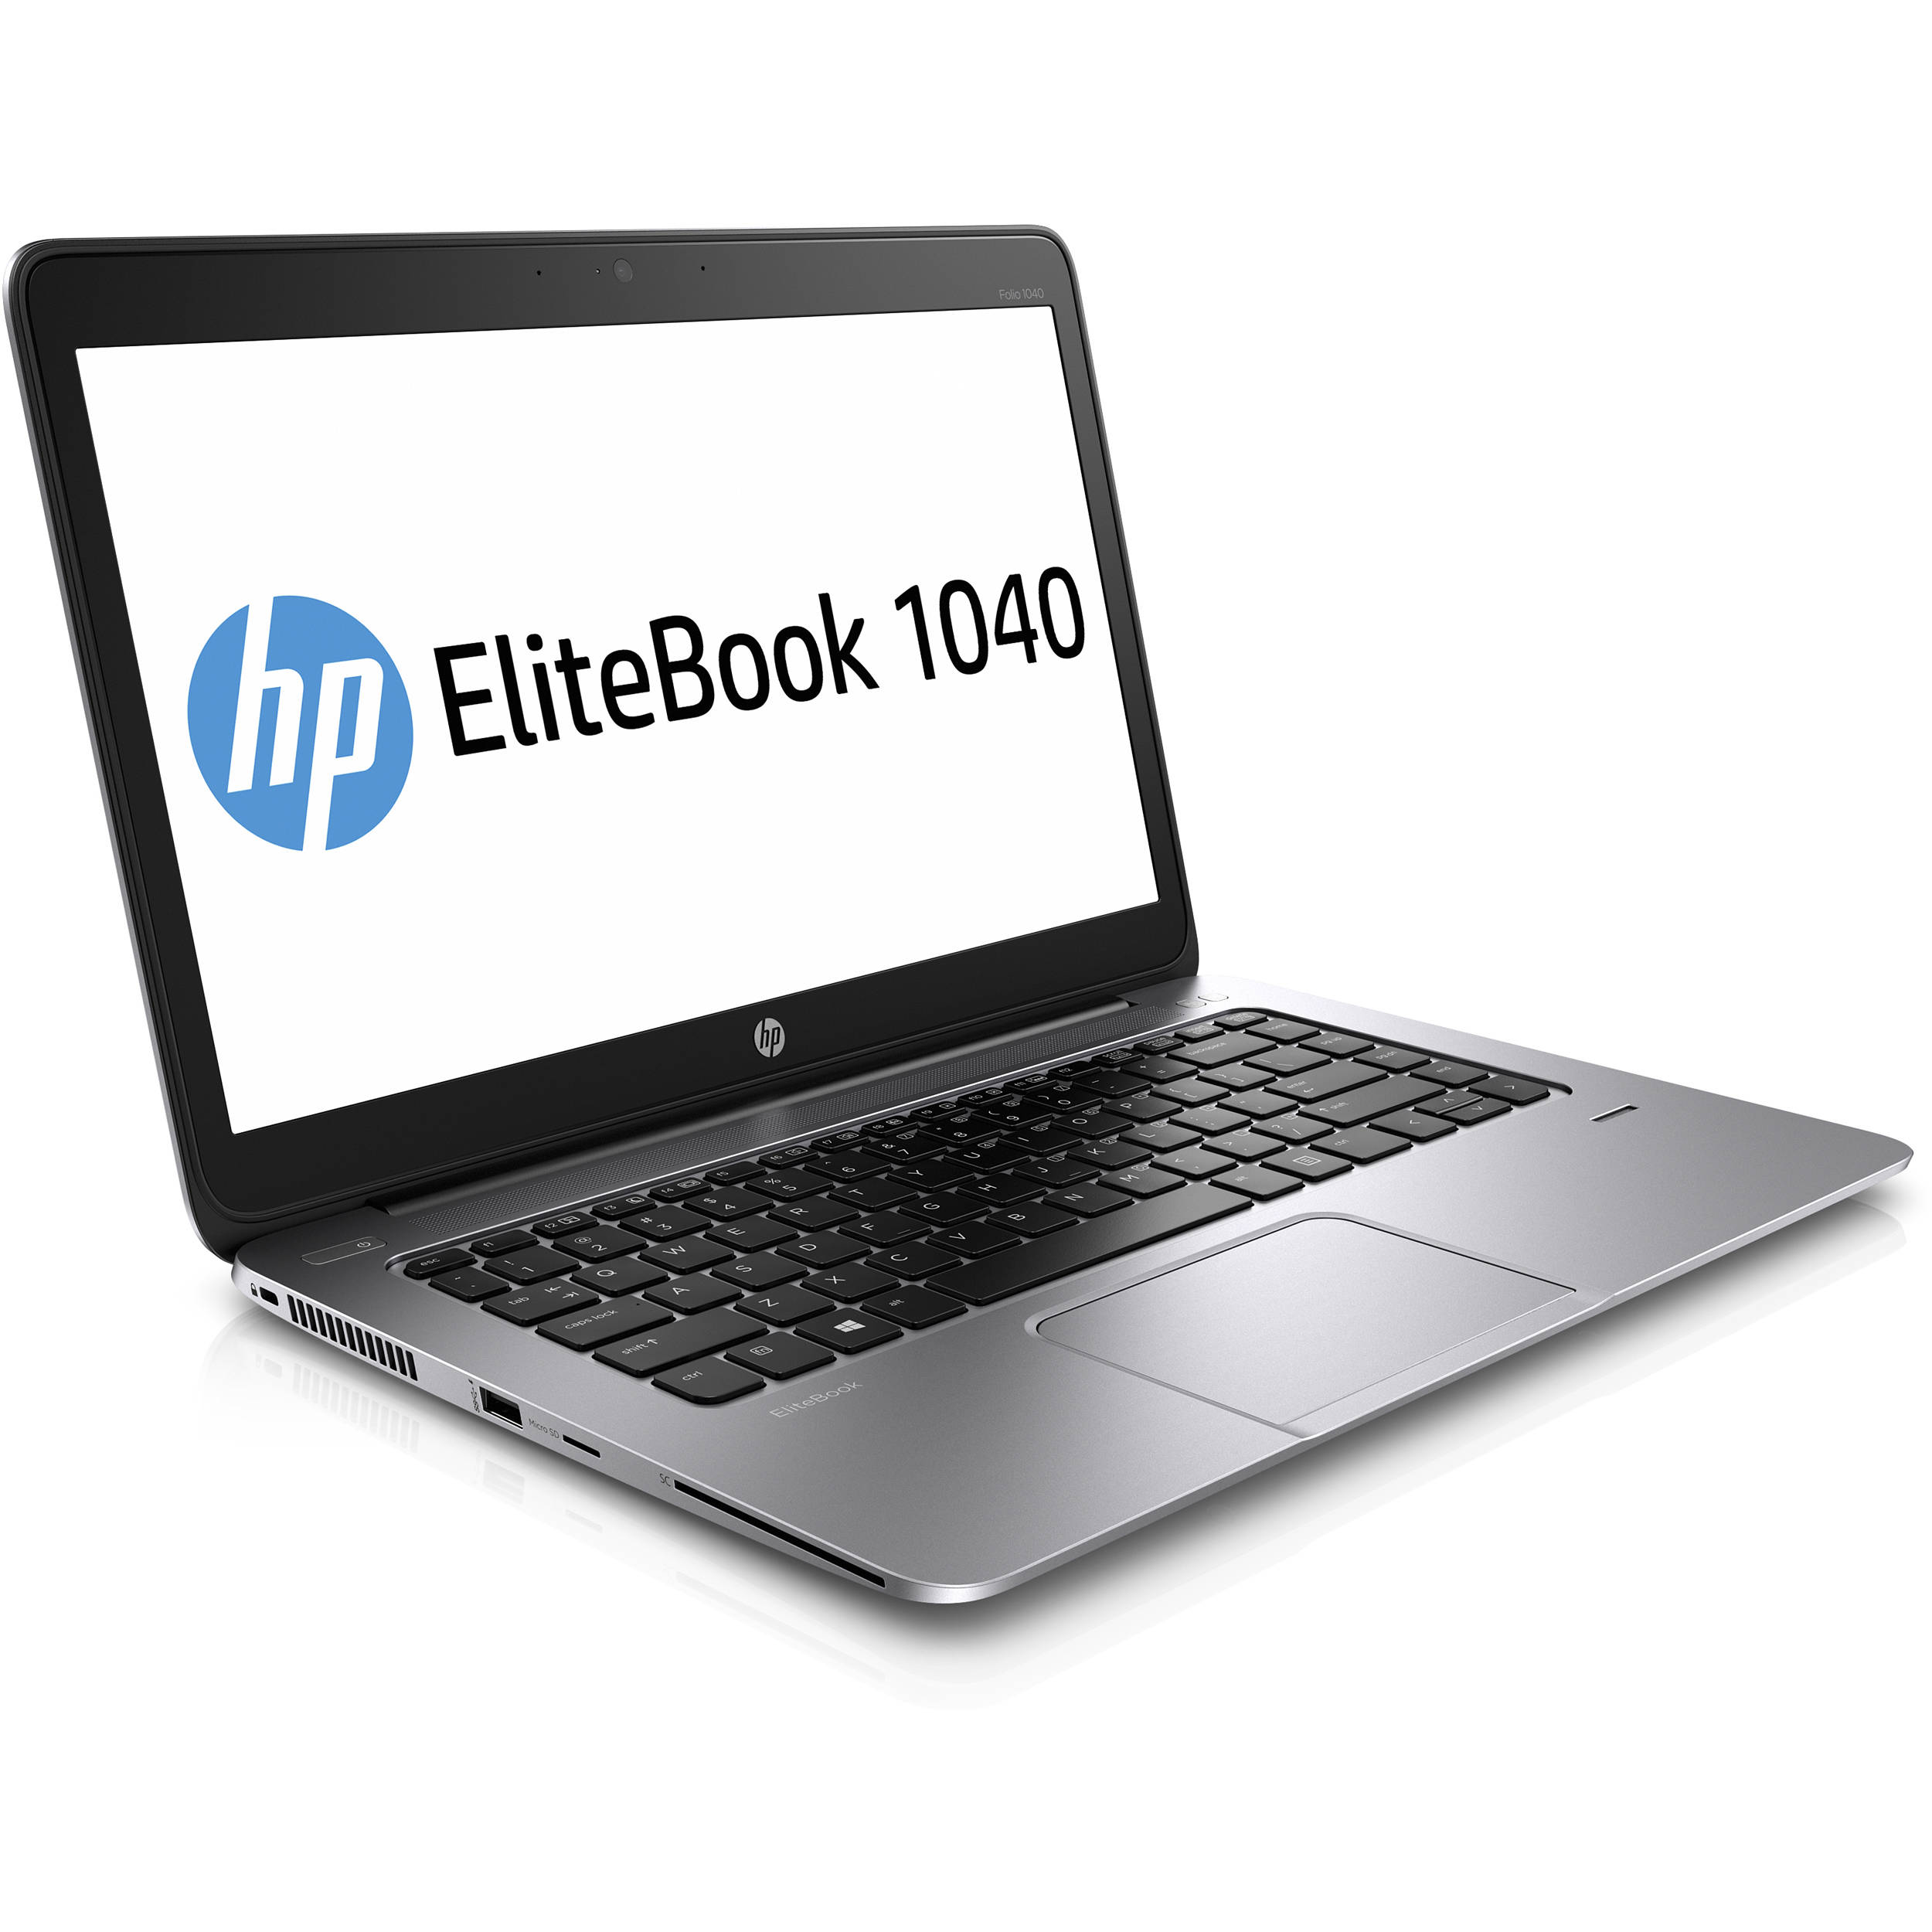 HP ELITEBOOK FOLIO 1040 G2 UNIVERSAL CAMERA WINDOWS 8 X64 DRIVER DOWNLOAD